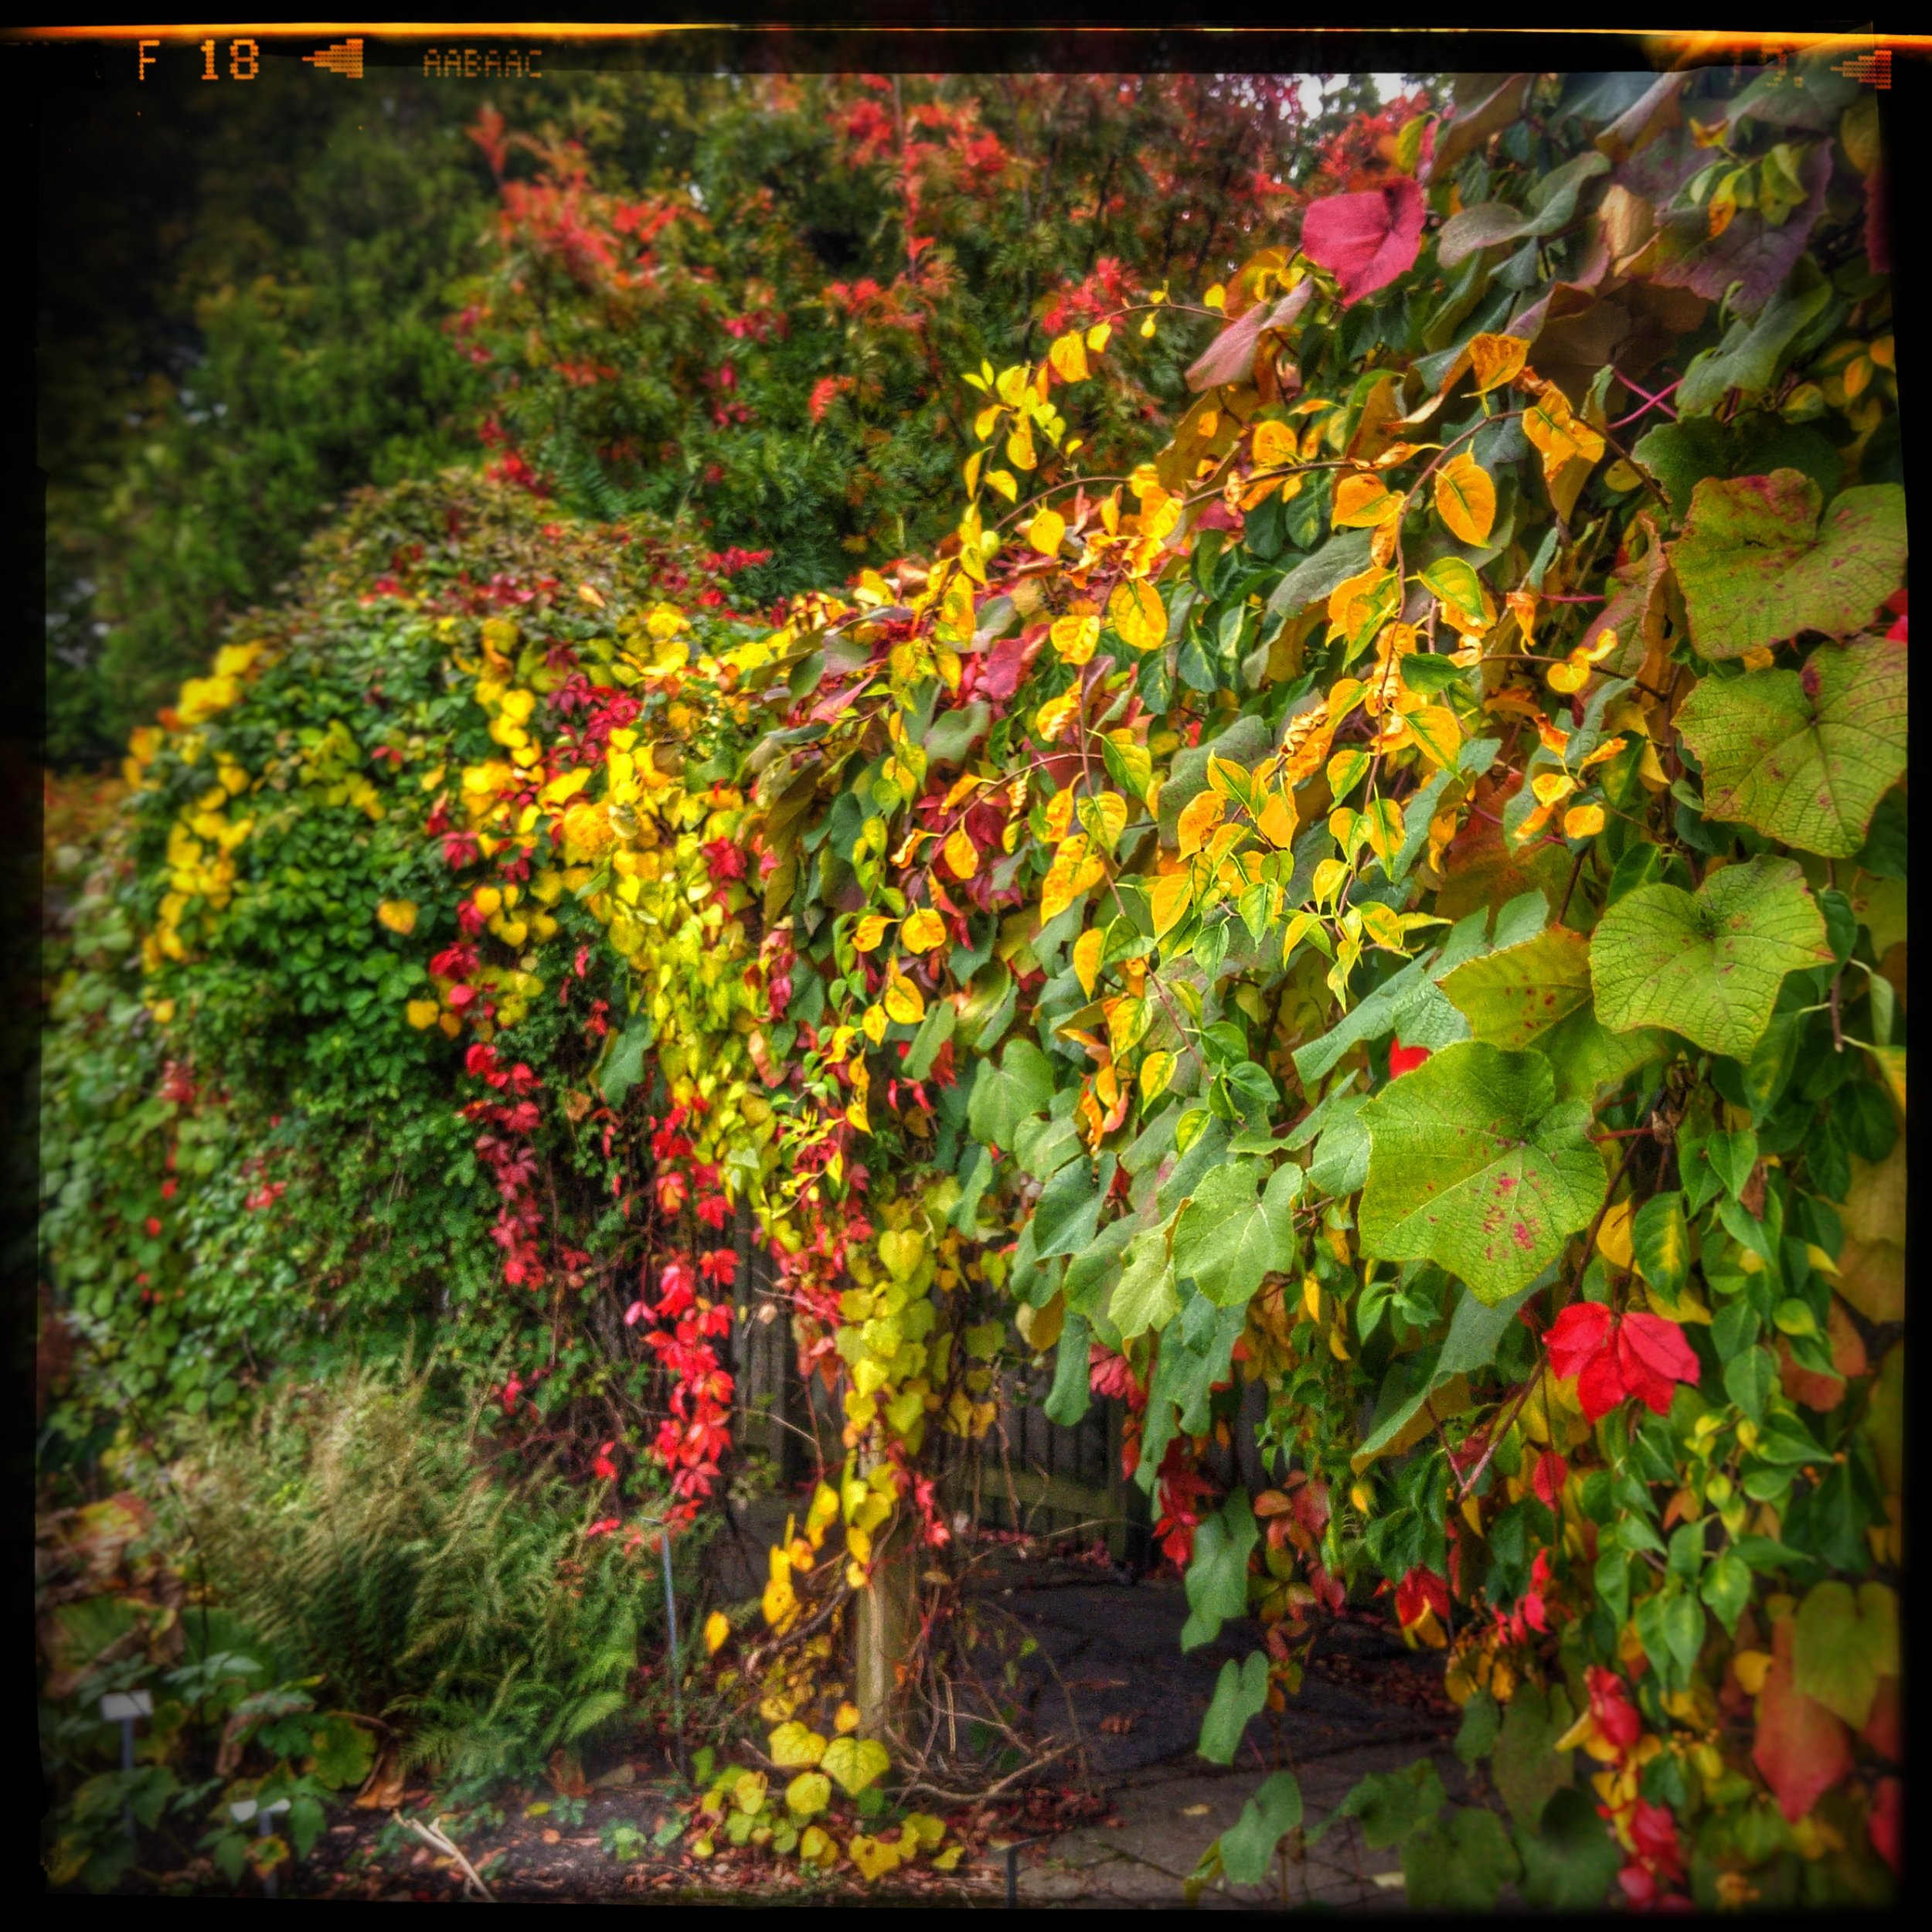 October 12 - Day 286: Fall Color Explosion